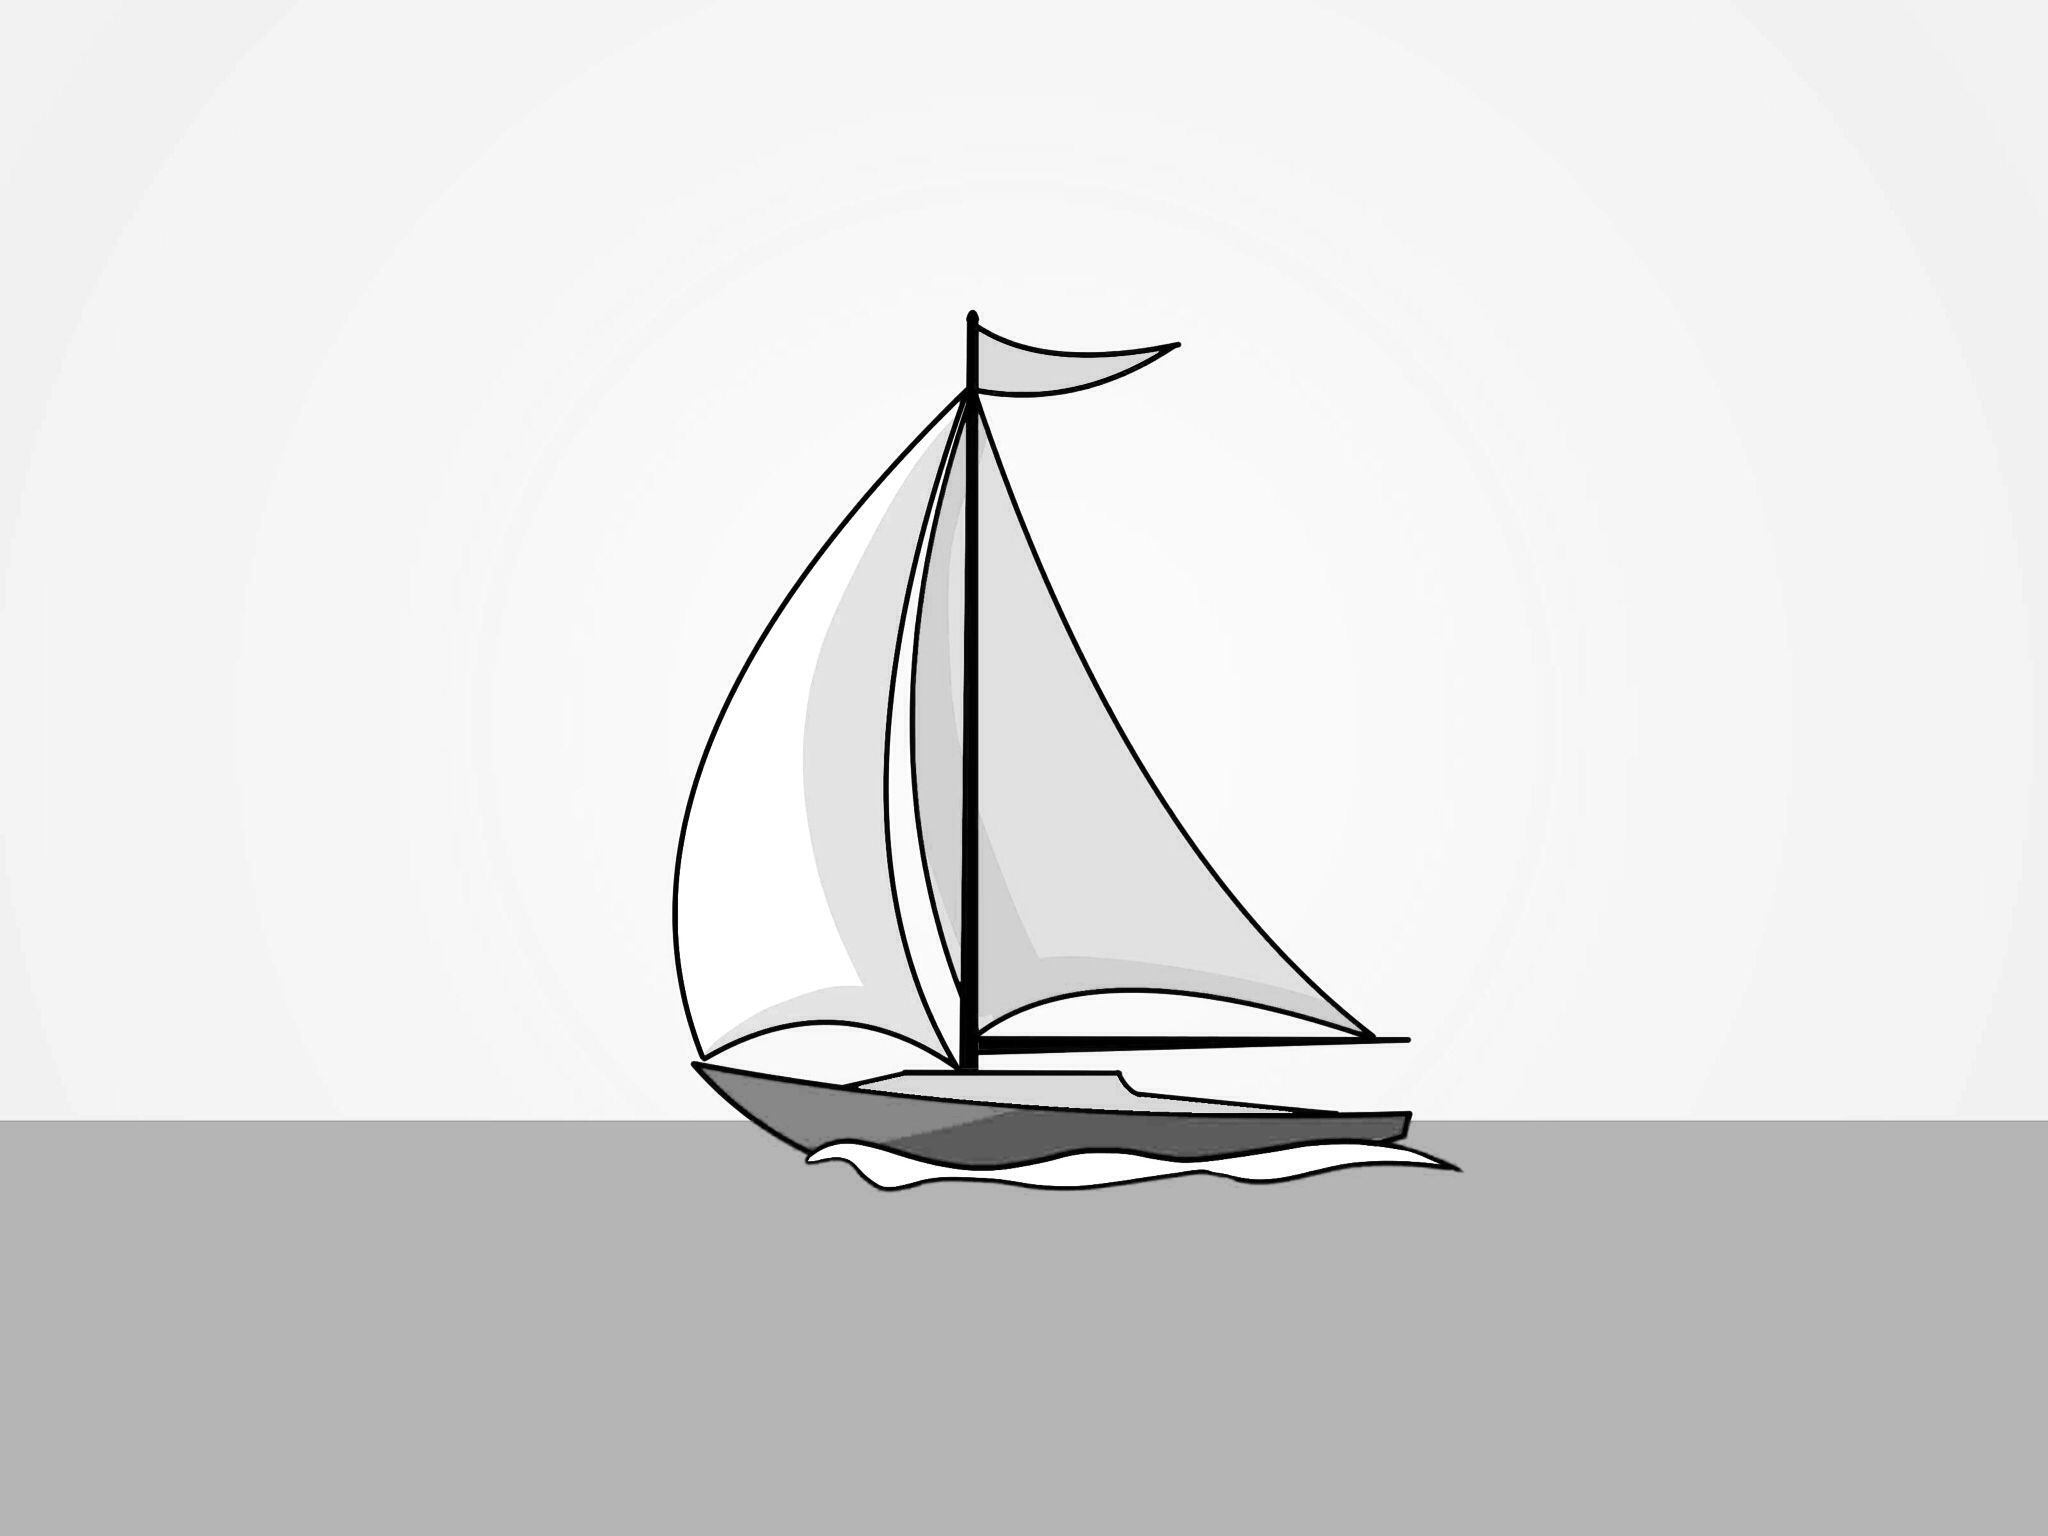 how to draw a sailboat sailboat drawing by nermine hanna to sailboat a draw how